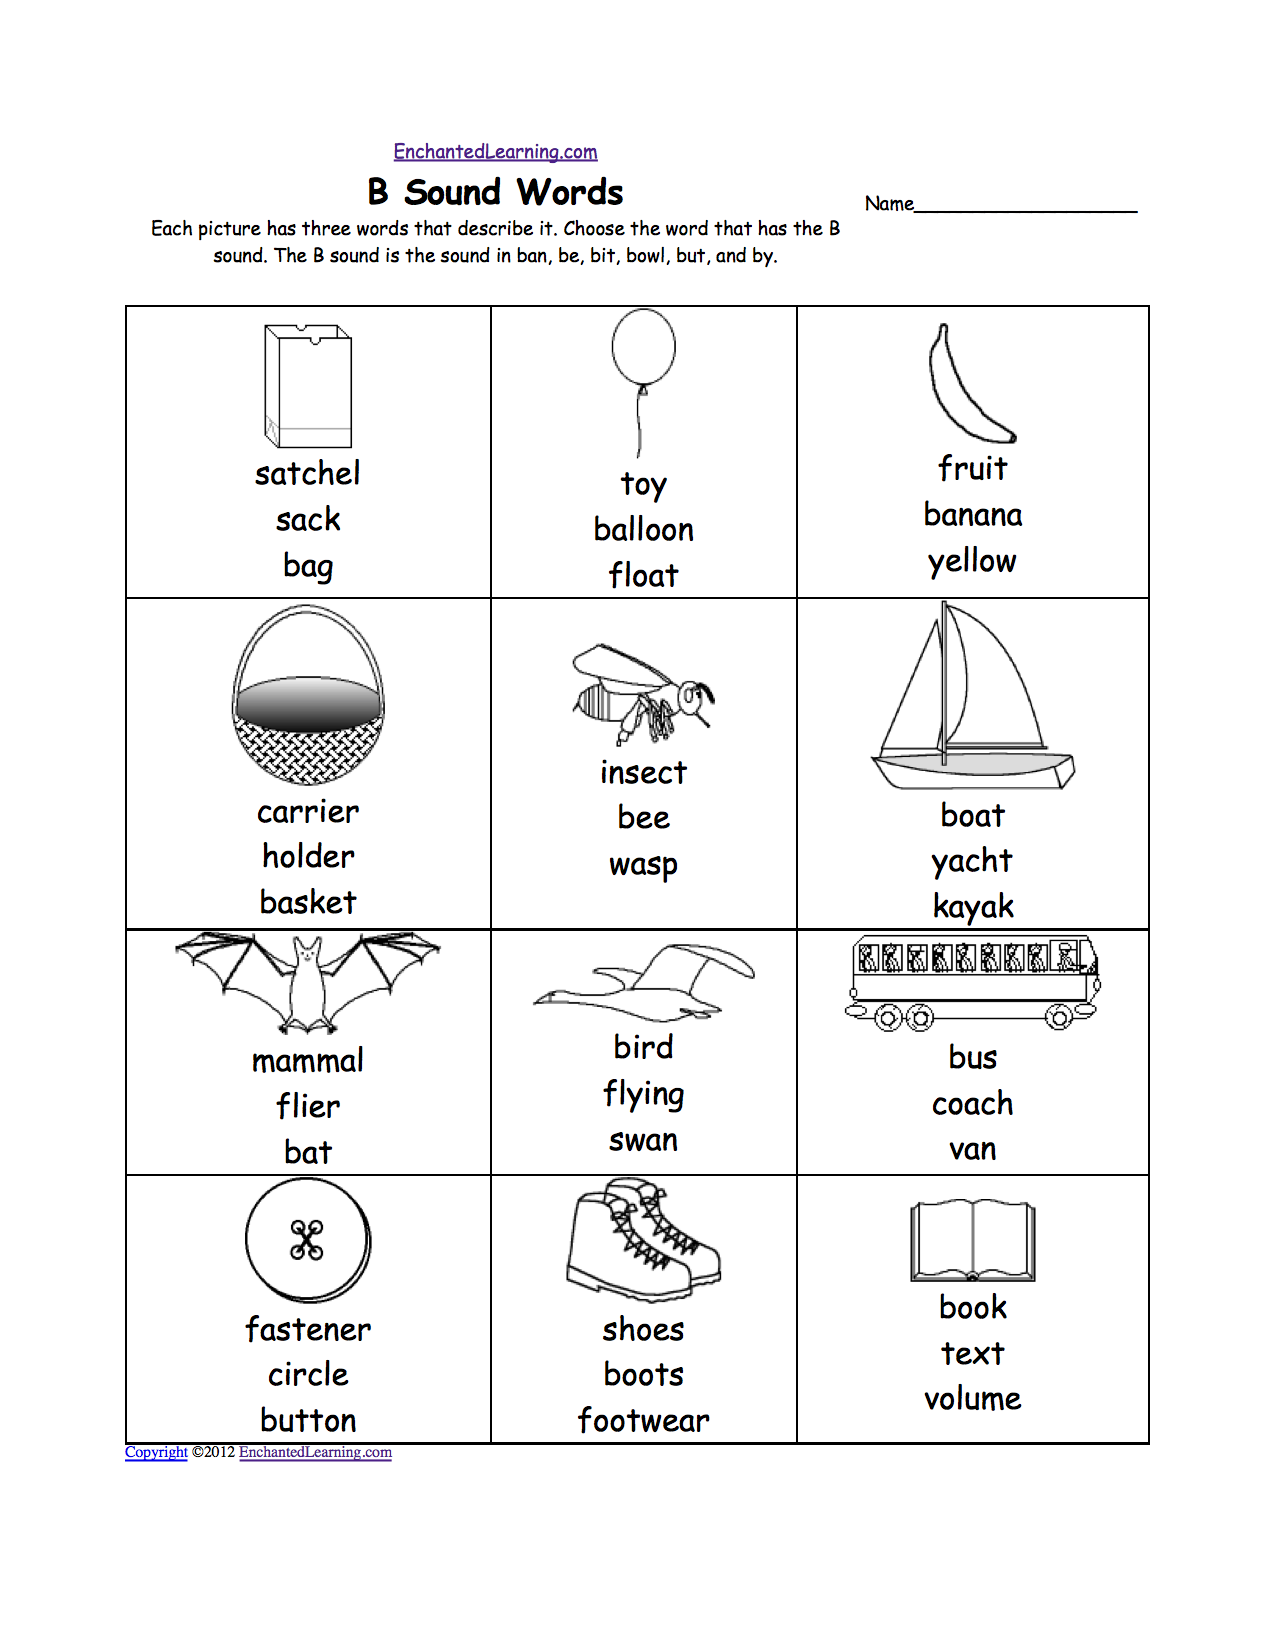 Aldiablosus  Ravishing Phonics Worksheets Multiple Choice Worksheets To Print  With Outstanding Quotbquot Sound Phonics Worksheet Multiple Choice Each Picture Has Three Words That Describe It Choose The Word That Has A Quotbquot Sound The Quotbquot Sound Is The Sound  With Beauteous Kindergarten Math Worksheets Counting Also Worksheet On Point Of View In Addition Grade  Angles Worksheets And Lattice Multiplication Worksheets Free As Well As Right Acute And Obtuse Angles Worksheets Additionally Wild Animals Worksheets For Preschoolers From Enchantedlearningcom With Aldiablosus  Outstanding Phonics Worksheets Multiple Choice Worksheets To Print  With Beauteous Quotbquot Sound Phonics Worksheet Multiple Choice Each Picture Has Three Words That Describe It Choose The Word That Has A Quotbquot Sound The Quotbquot Sound Is The Sound  And Ravishing Kindergarten Math Worksheets Counting Also Worksheet On Point Of View In Addition Grade  Angles Worksheets From Enchantedlearningcom